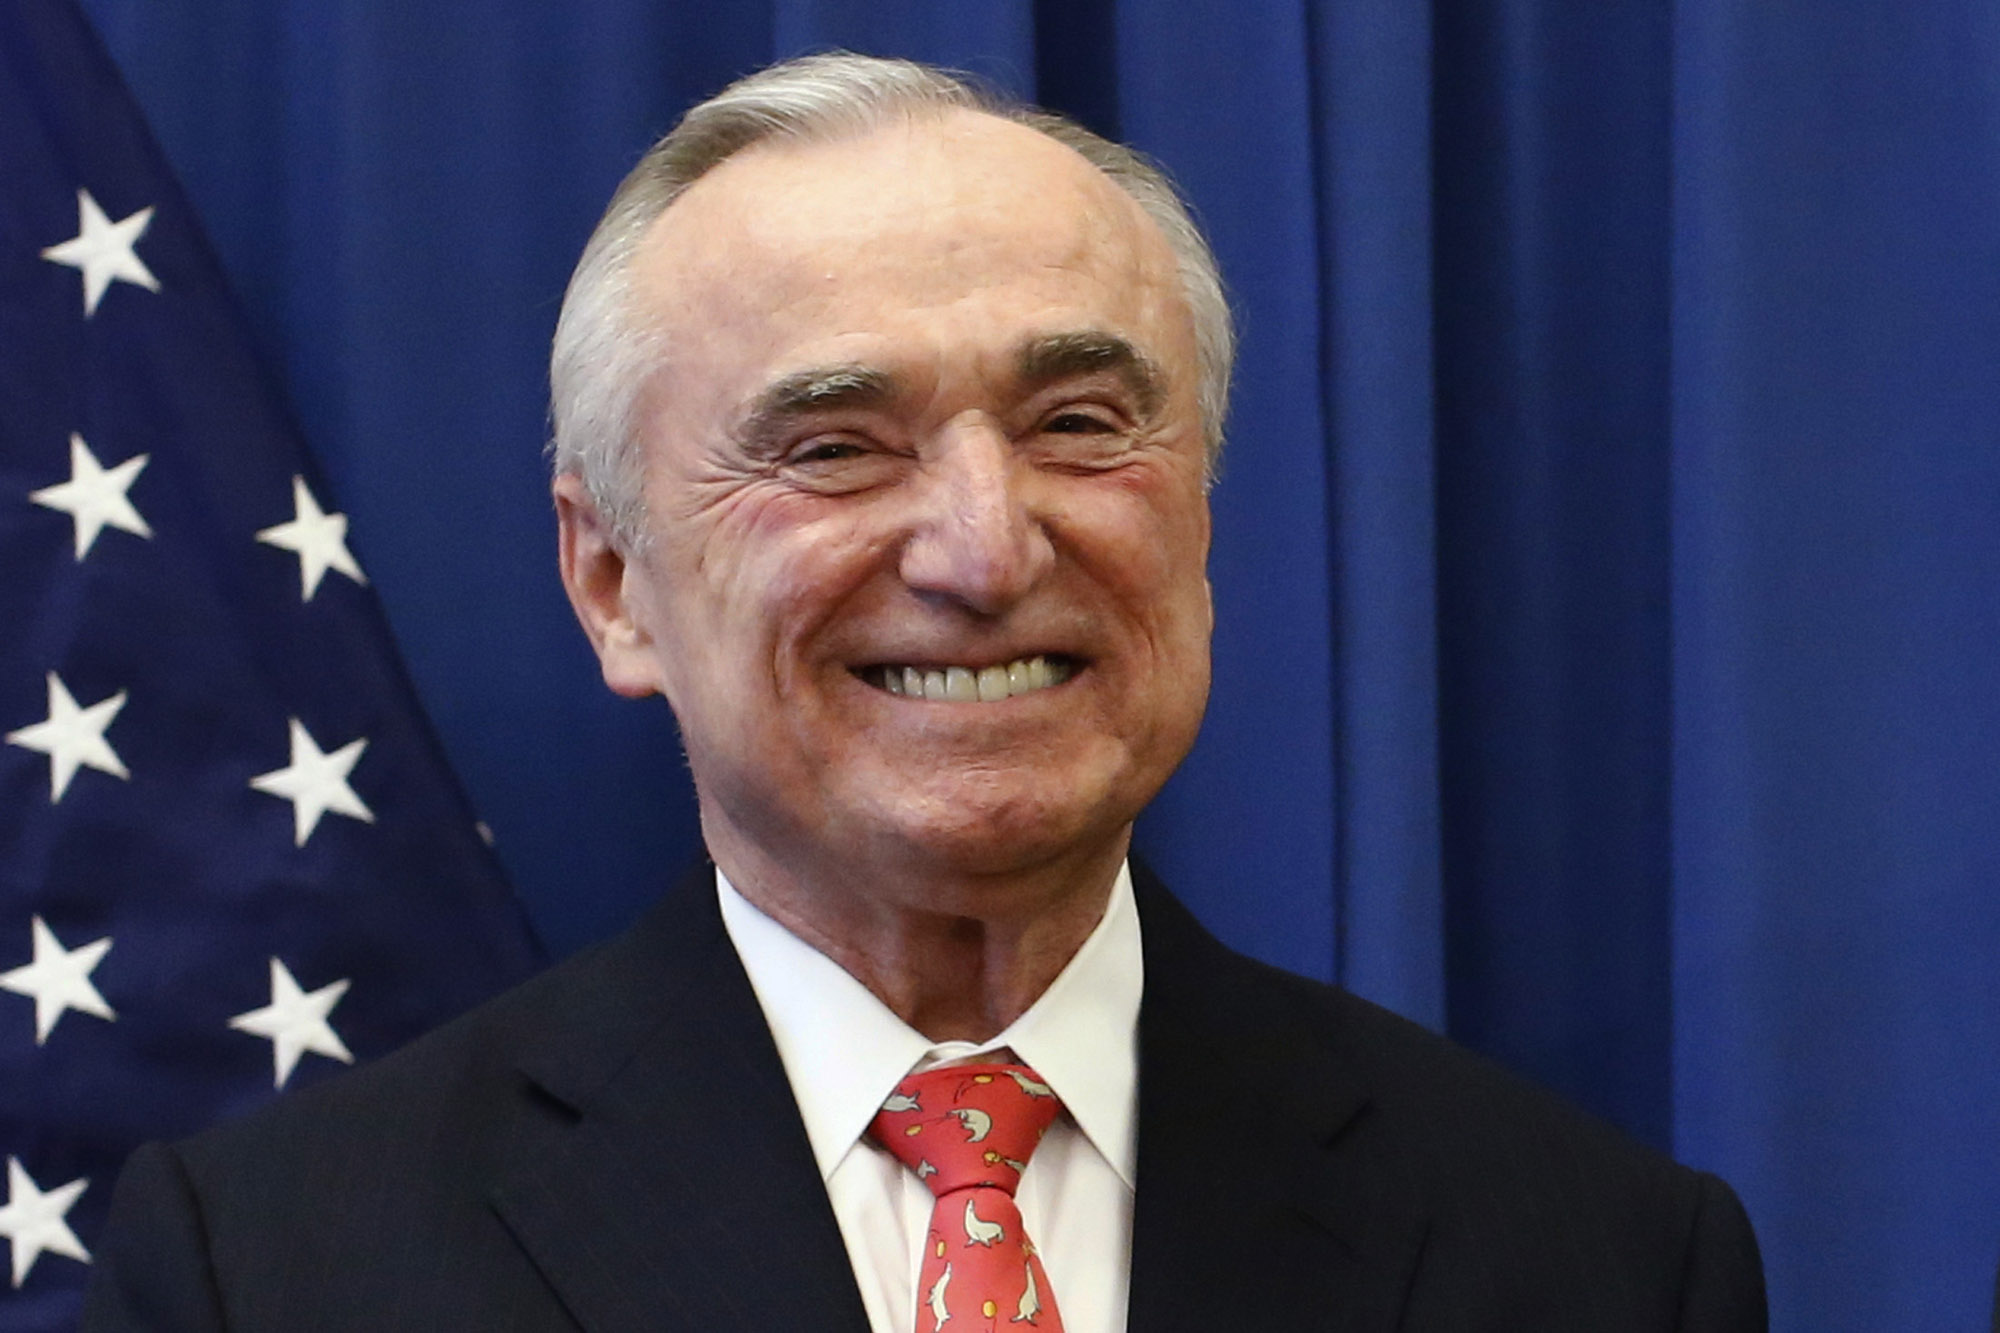 william bratton and the nypd Lower manhattan — the nypd's controversial stop-and-frisk policy is essential to keeping the city safe — but only if it's used in moderation, former police commissioner bill bratton said.